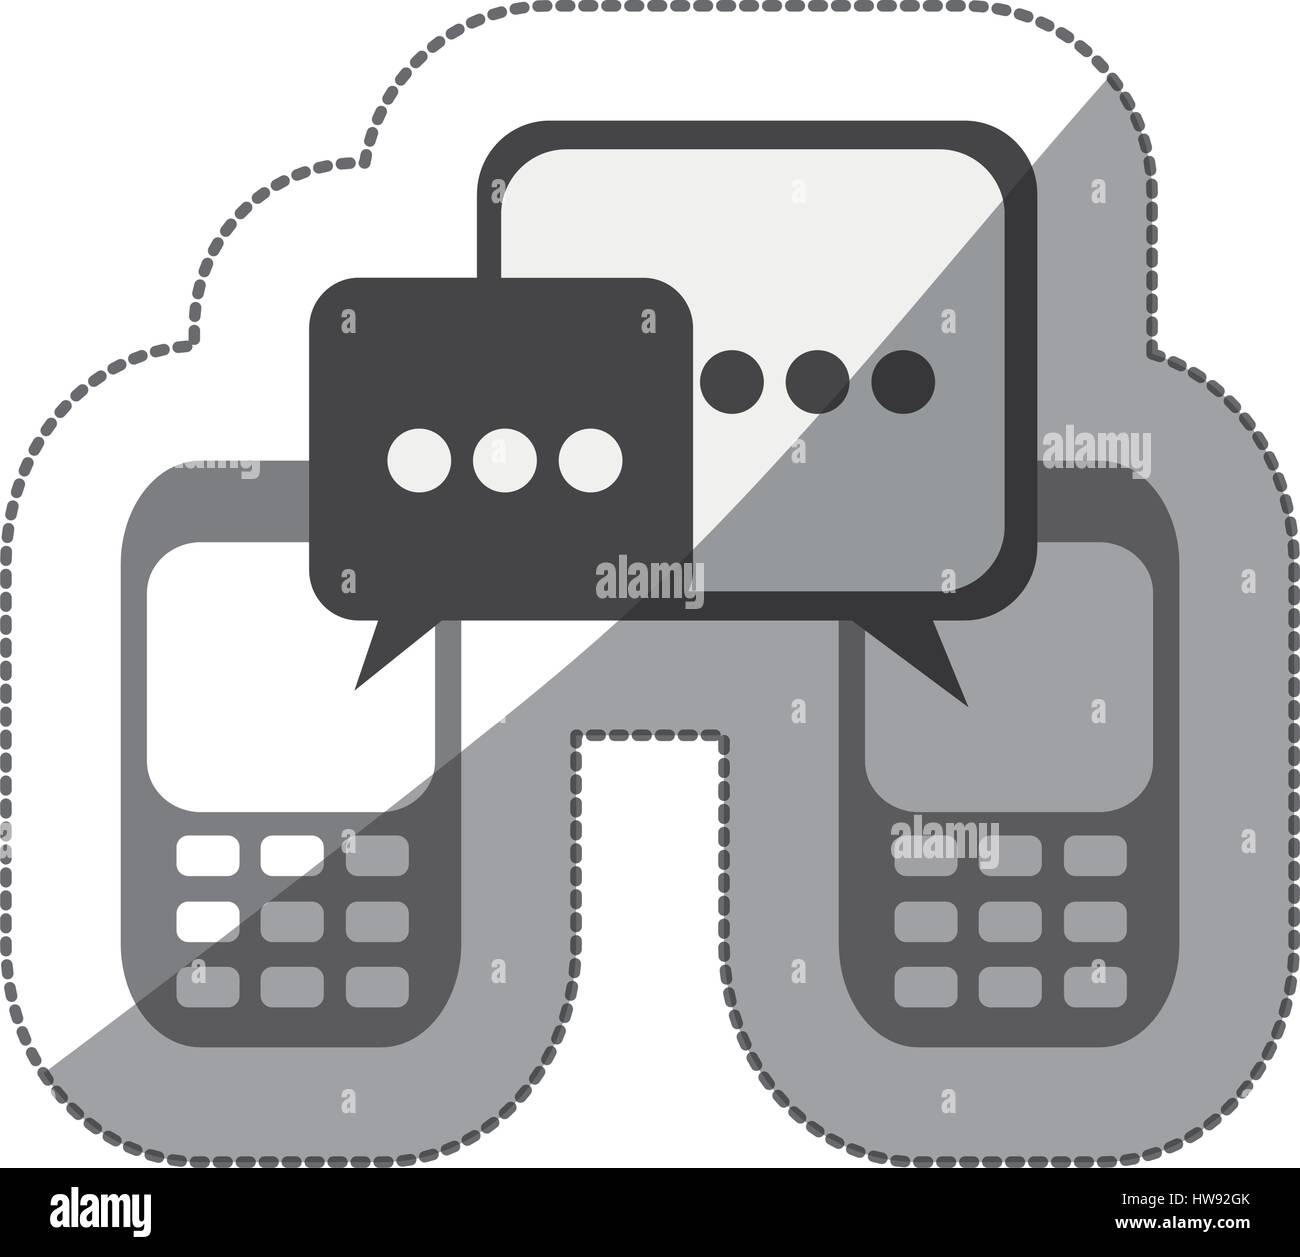 monochrome silhouette sticker of cell phones communication dialogue box - Stock Image